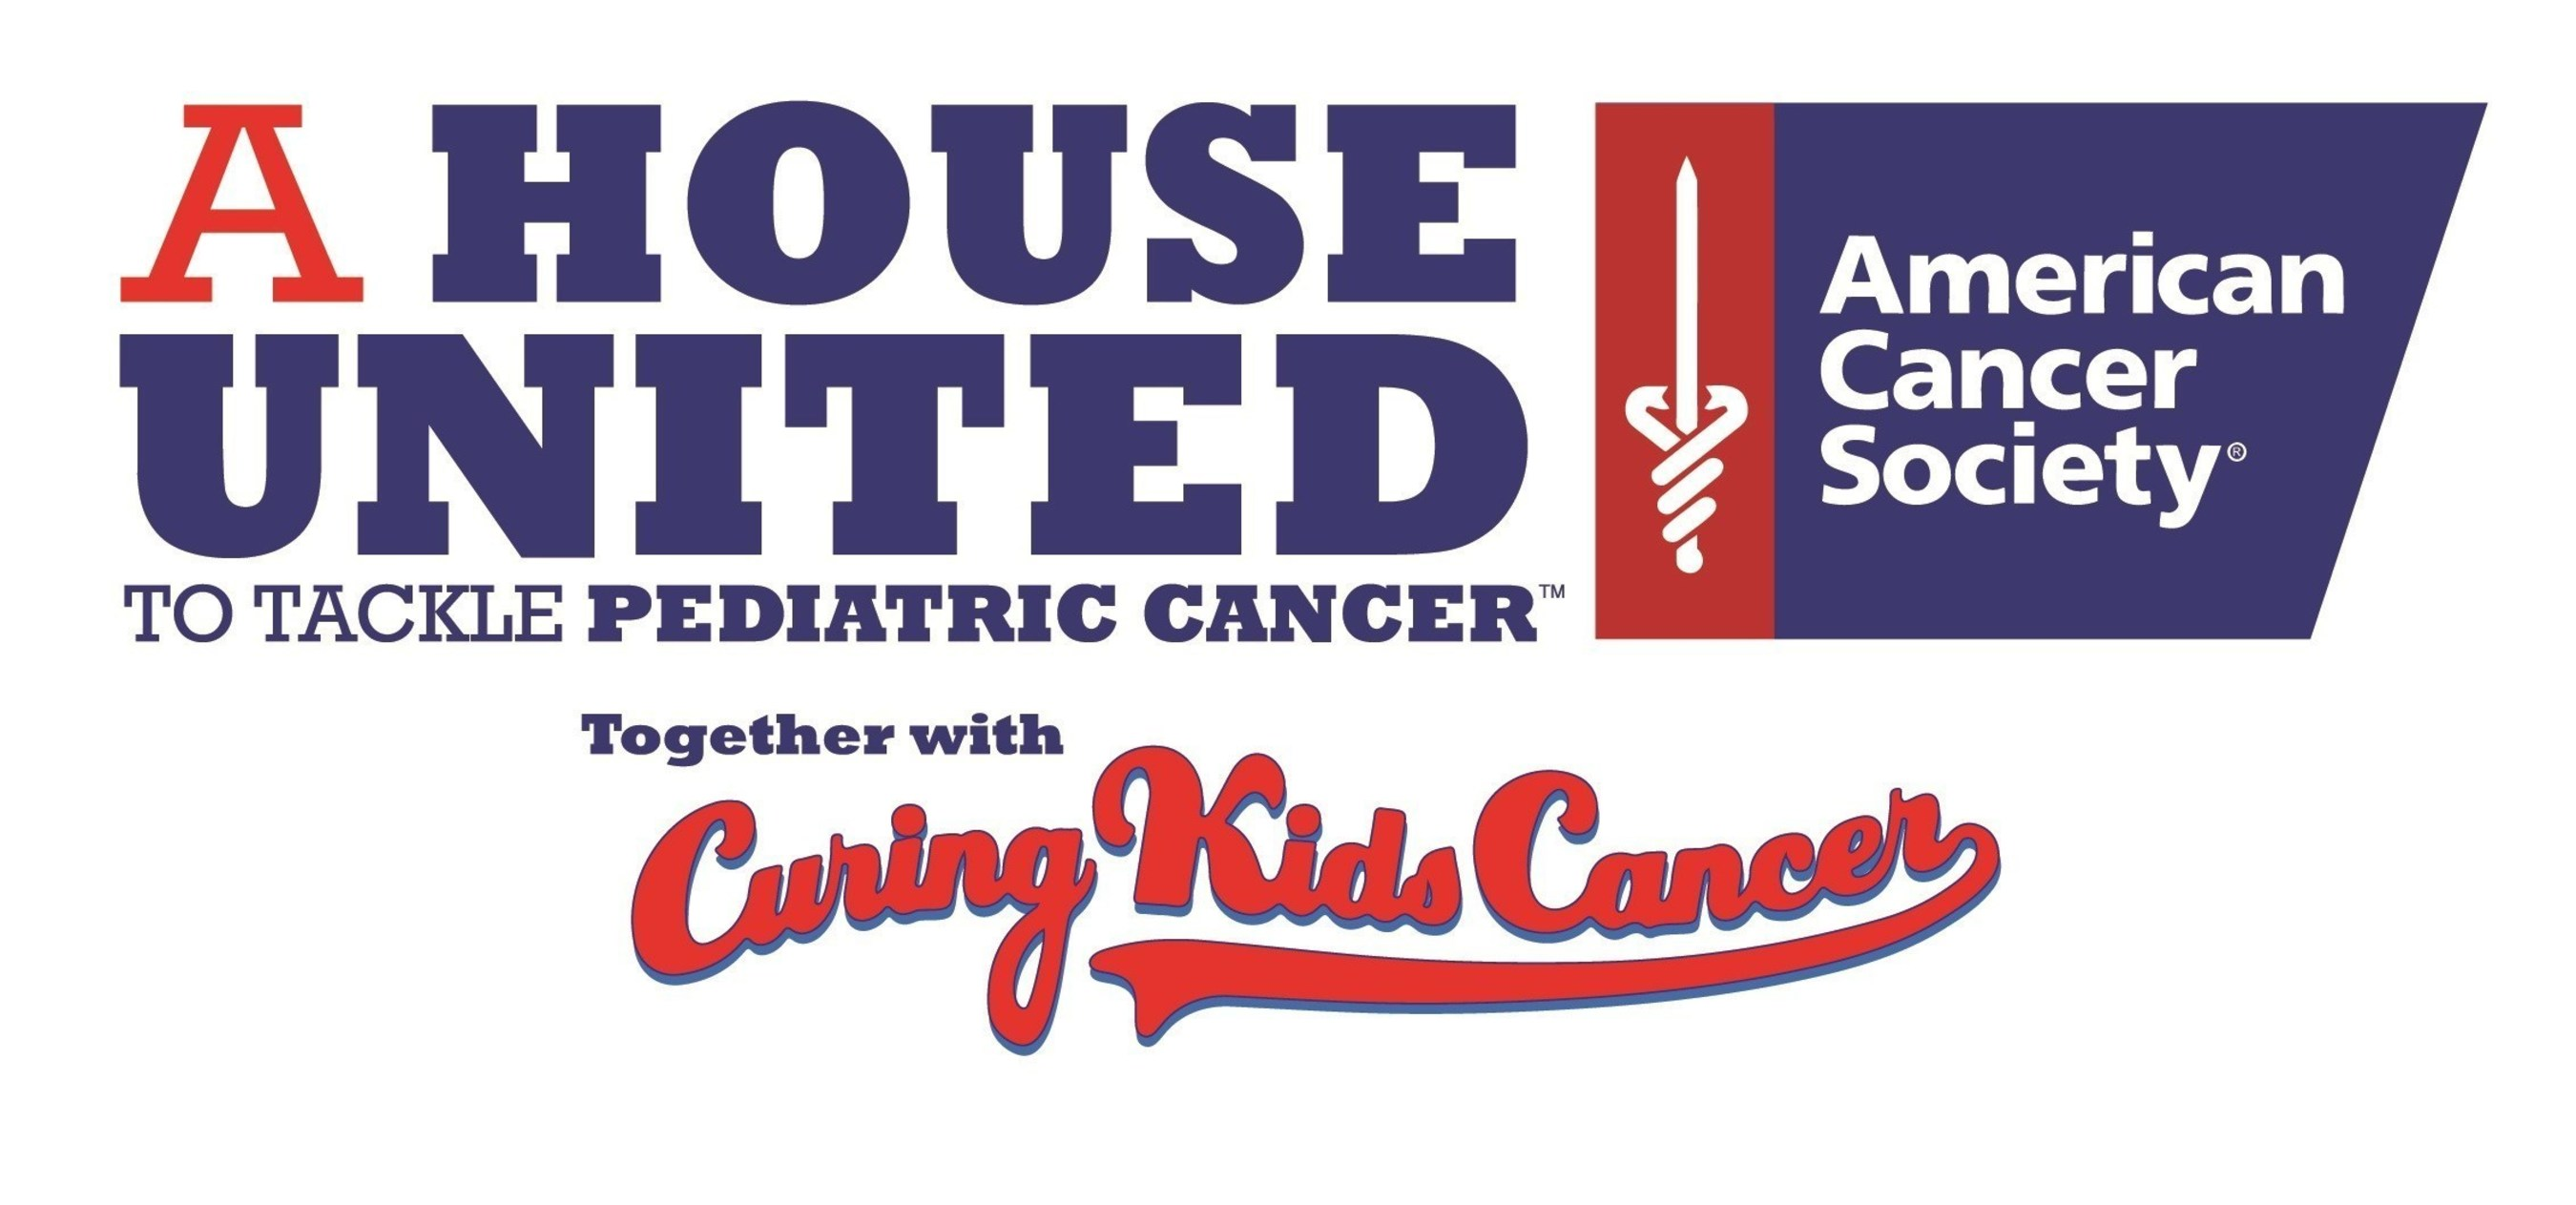 A_House_United_to_Tackle_Pediatric_Cancer____American_Cancer_Society_Logo